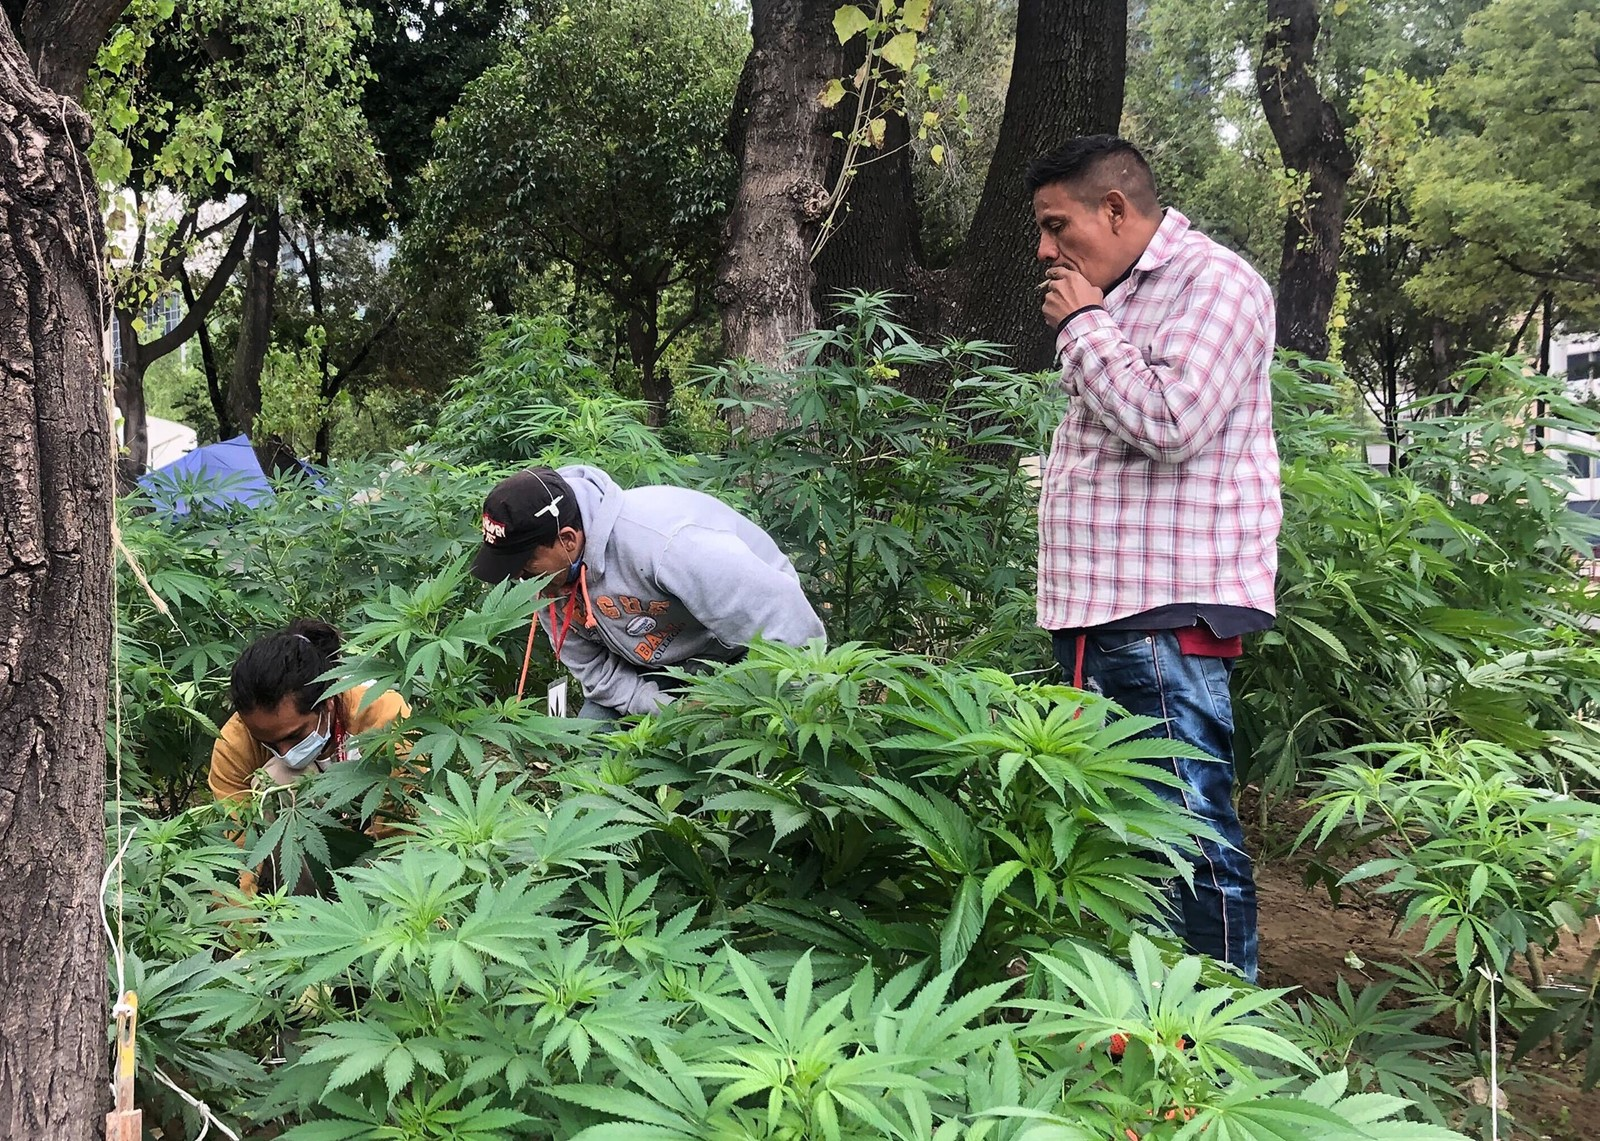 Print Mexico poised to become legal pot giant Lawmakers have until Dec. 15  to approve legislation to regulate recreational cannabis. DEBATE has  intensified in Mexico over what marijuana legalization should look like and  whom it should benefit. Above, the ...